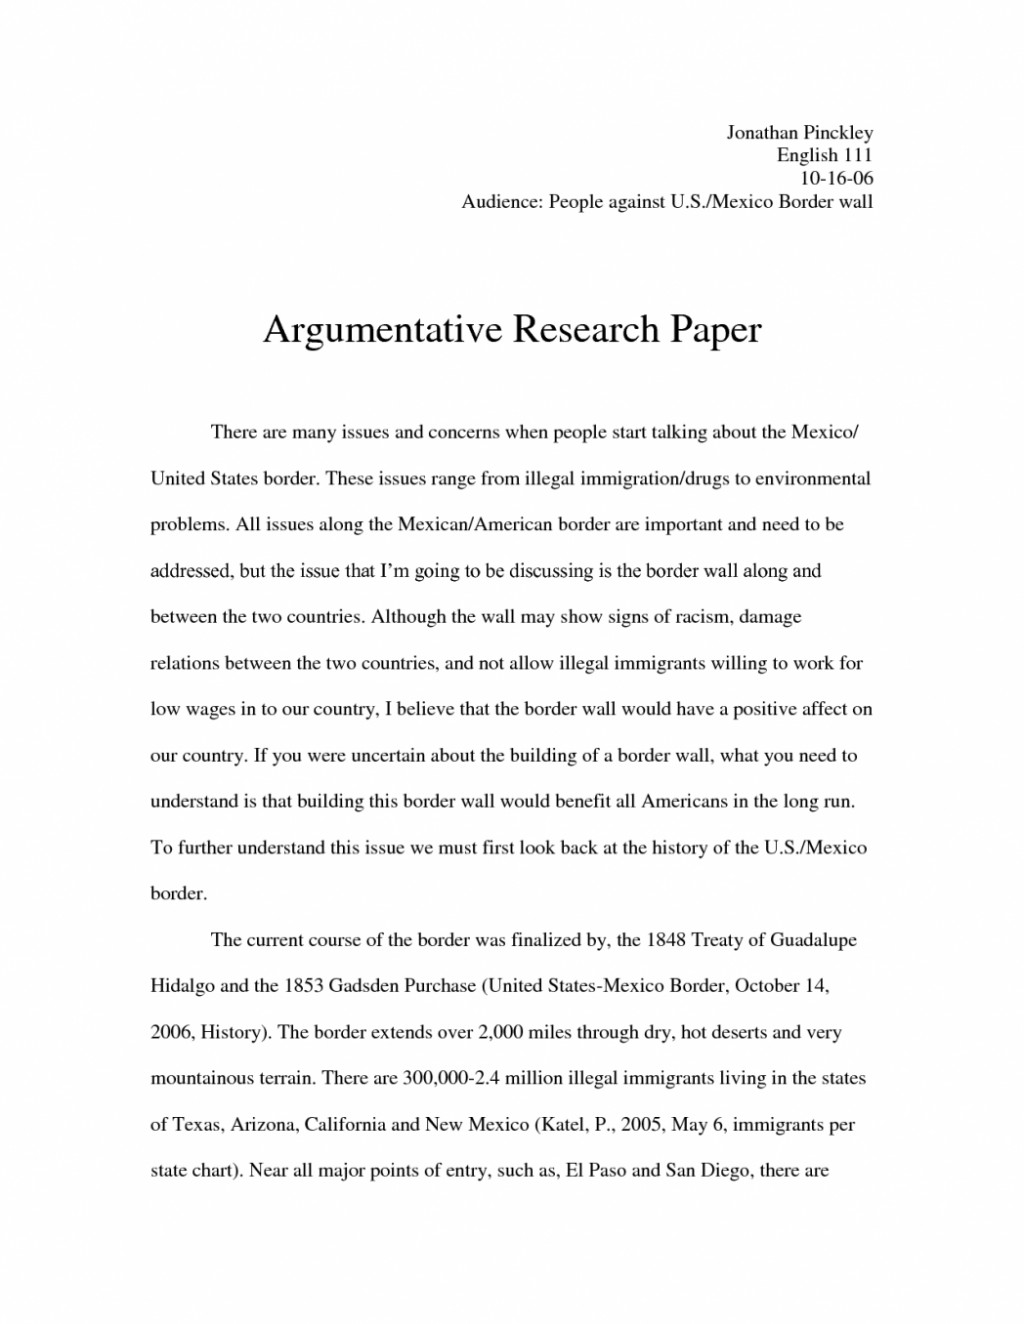 004 Argumentative Essay On Illegal Immigration Argument Research Persuasive Why Is Good Pgune Reform In America Topics Control Pro Thesis Rights 1048x1356 Exceptional Titles Policy Examples Outline Large